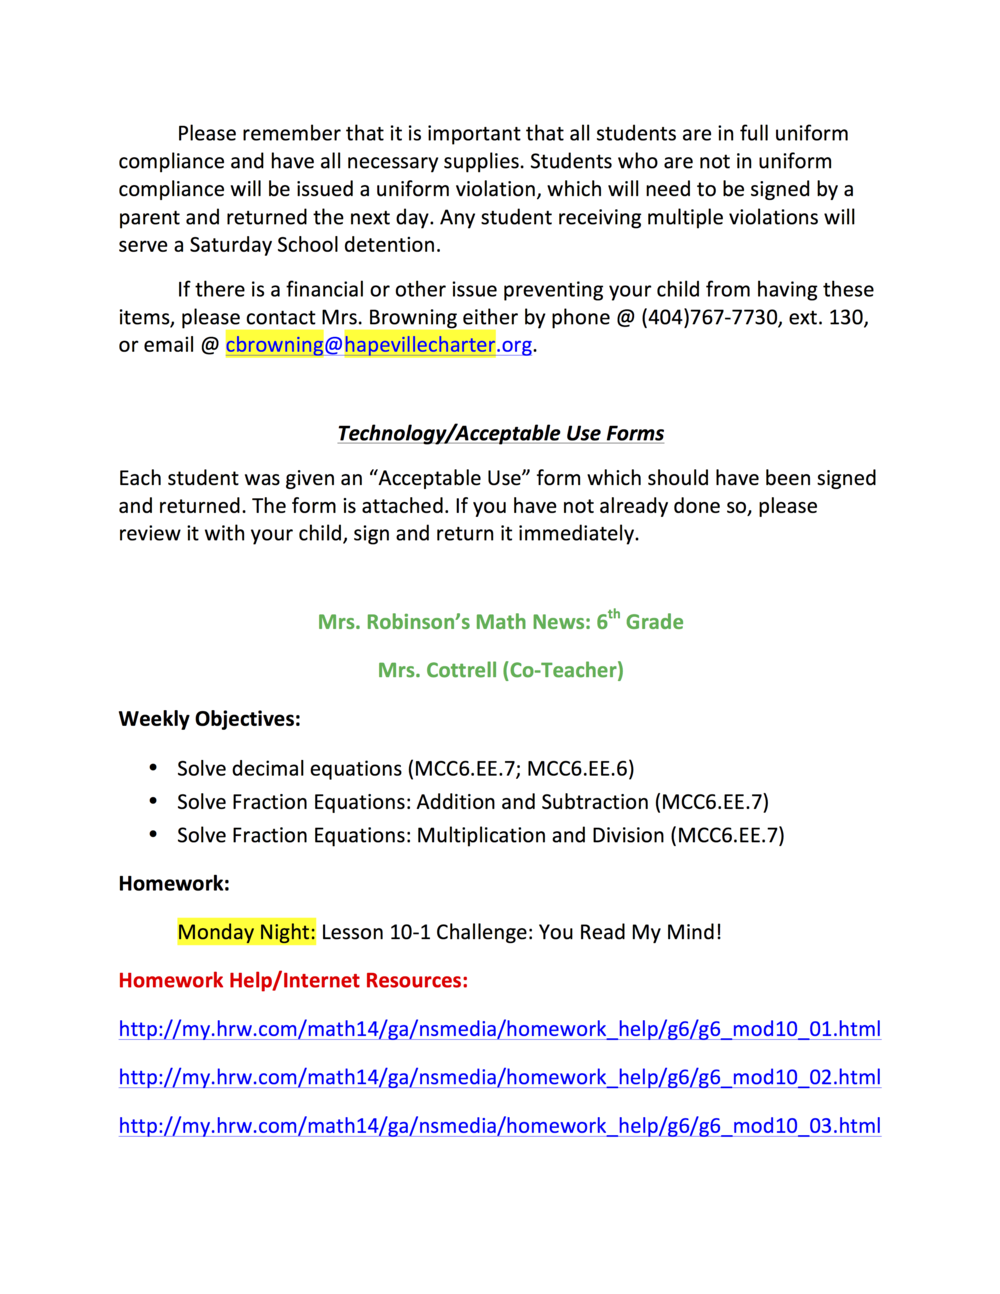 Week 15 Newsletter-6thB.png